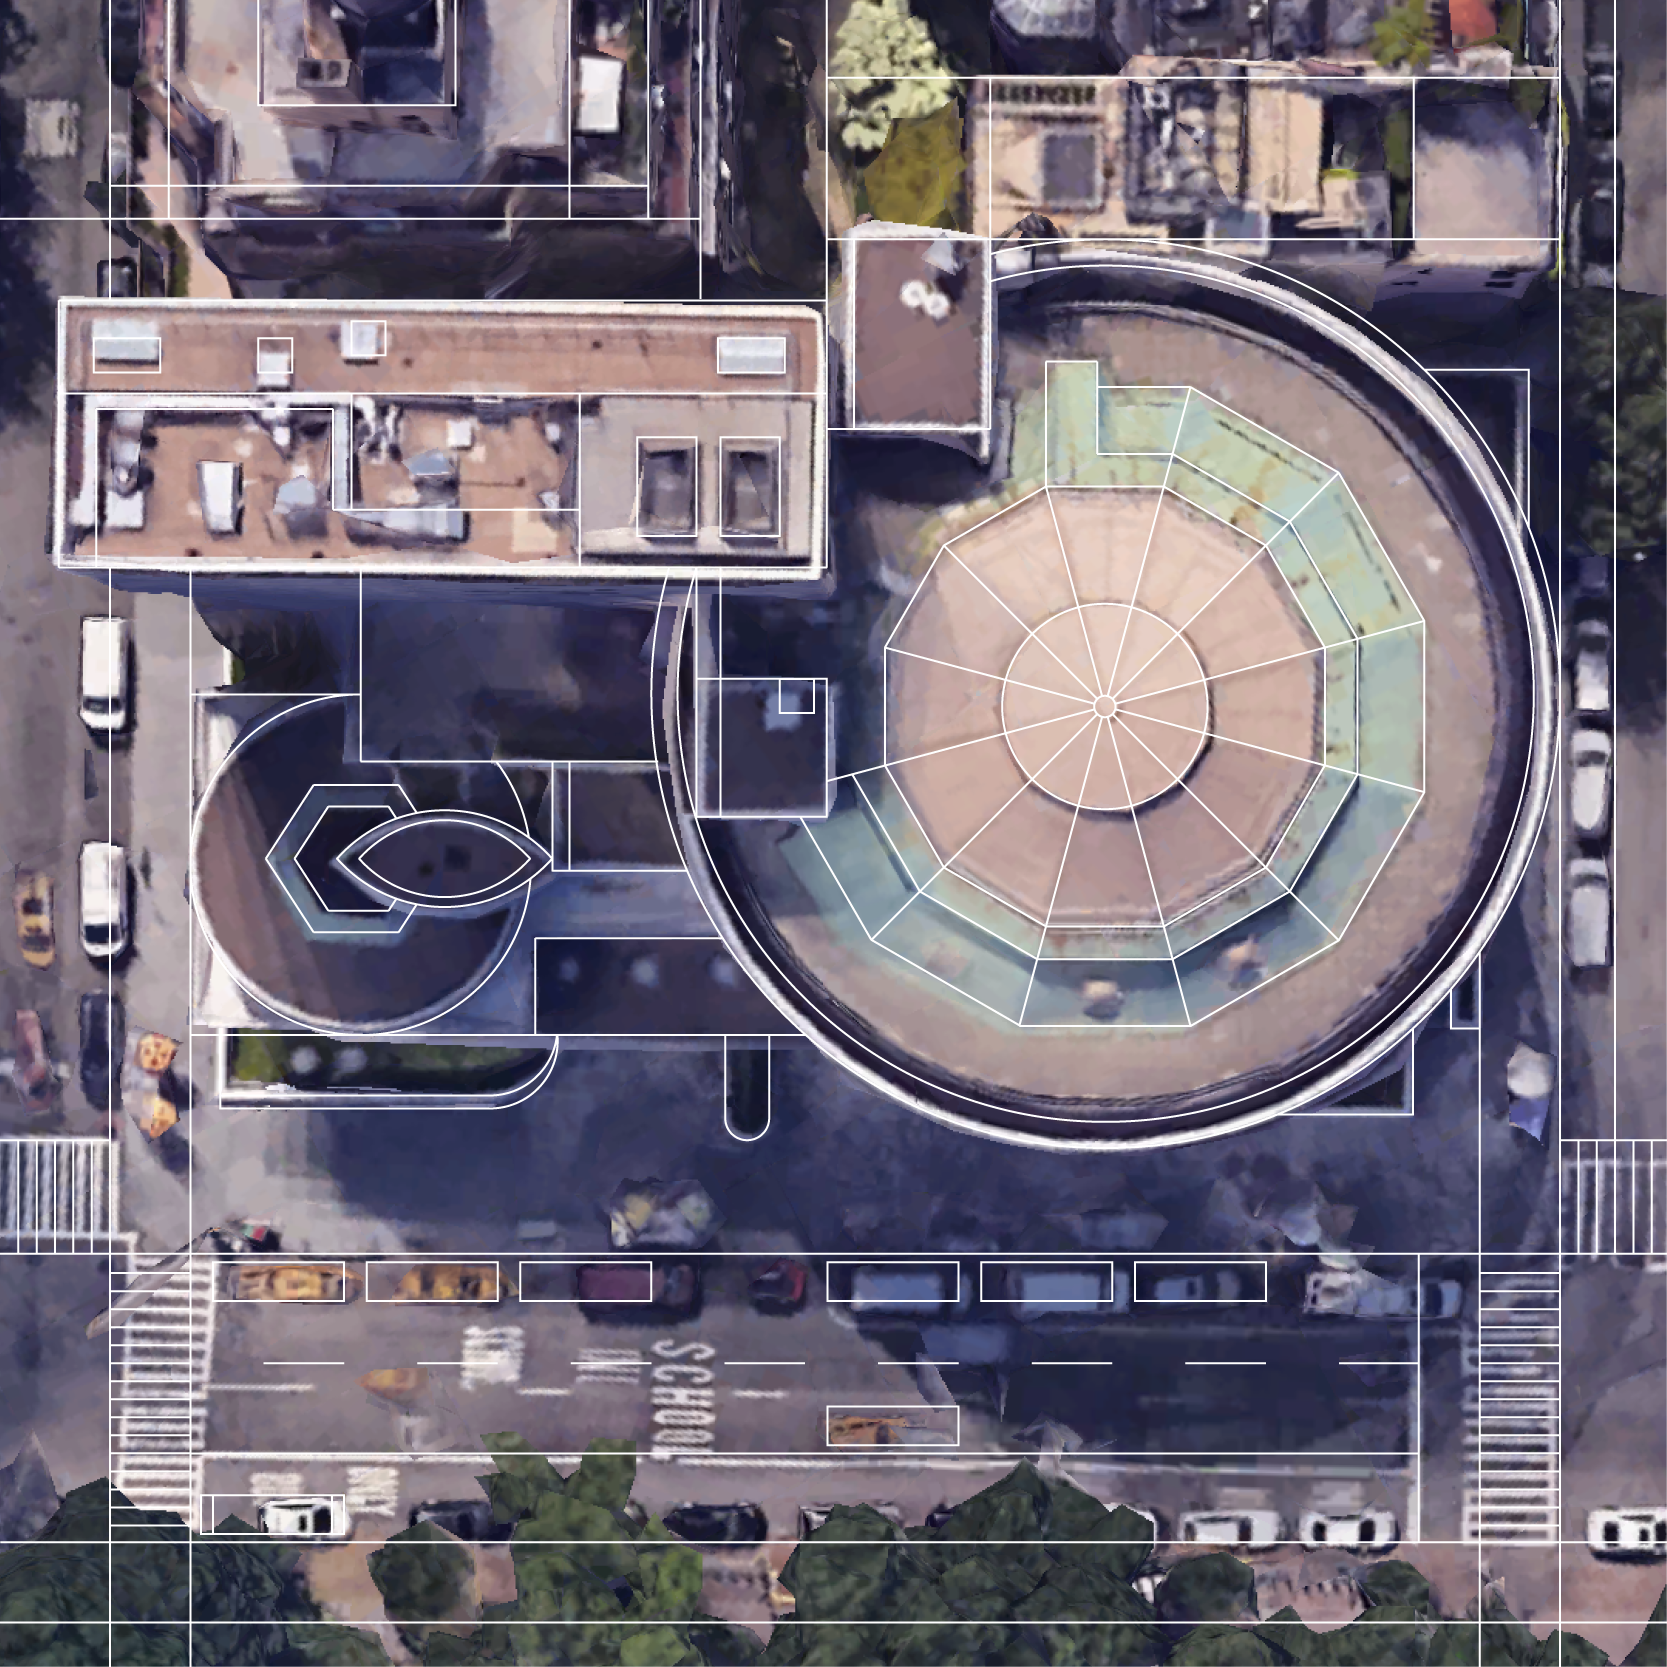 MV_Guggenheim_Abstraction_Aerial Photo and Abstraction.png